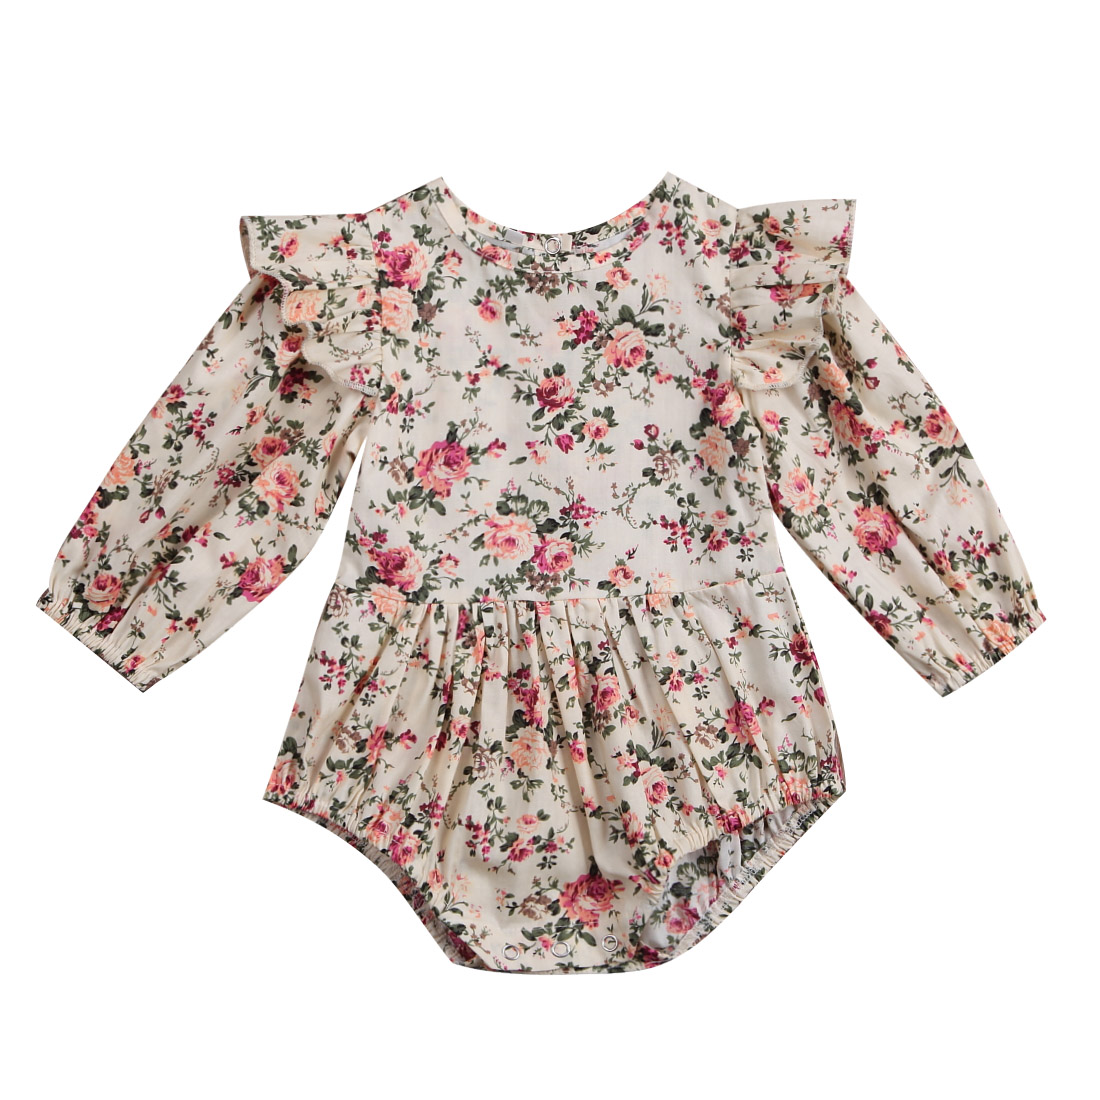 Newborn Toddler Baby Girls Ruffles Floral Romper Jumpsuit Outfits Clothes Innrech Market.com